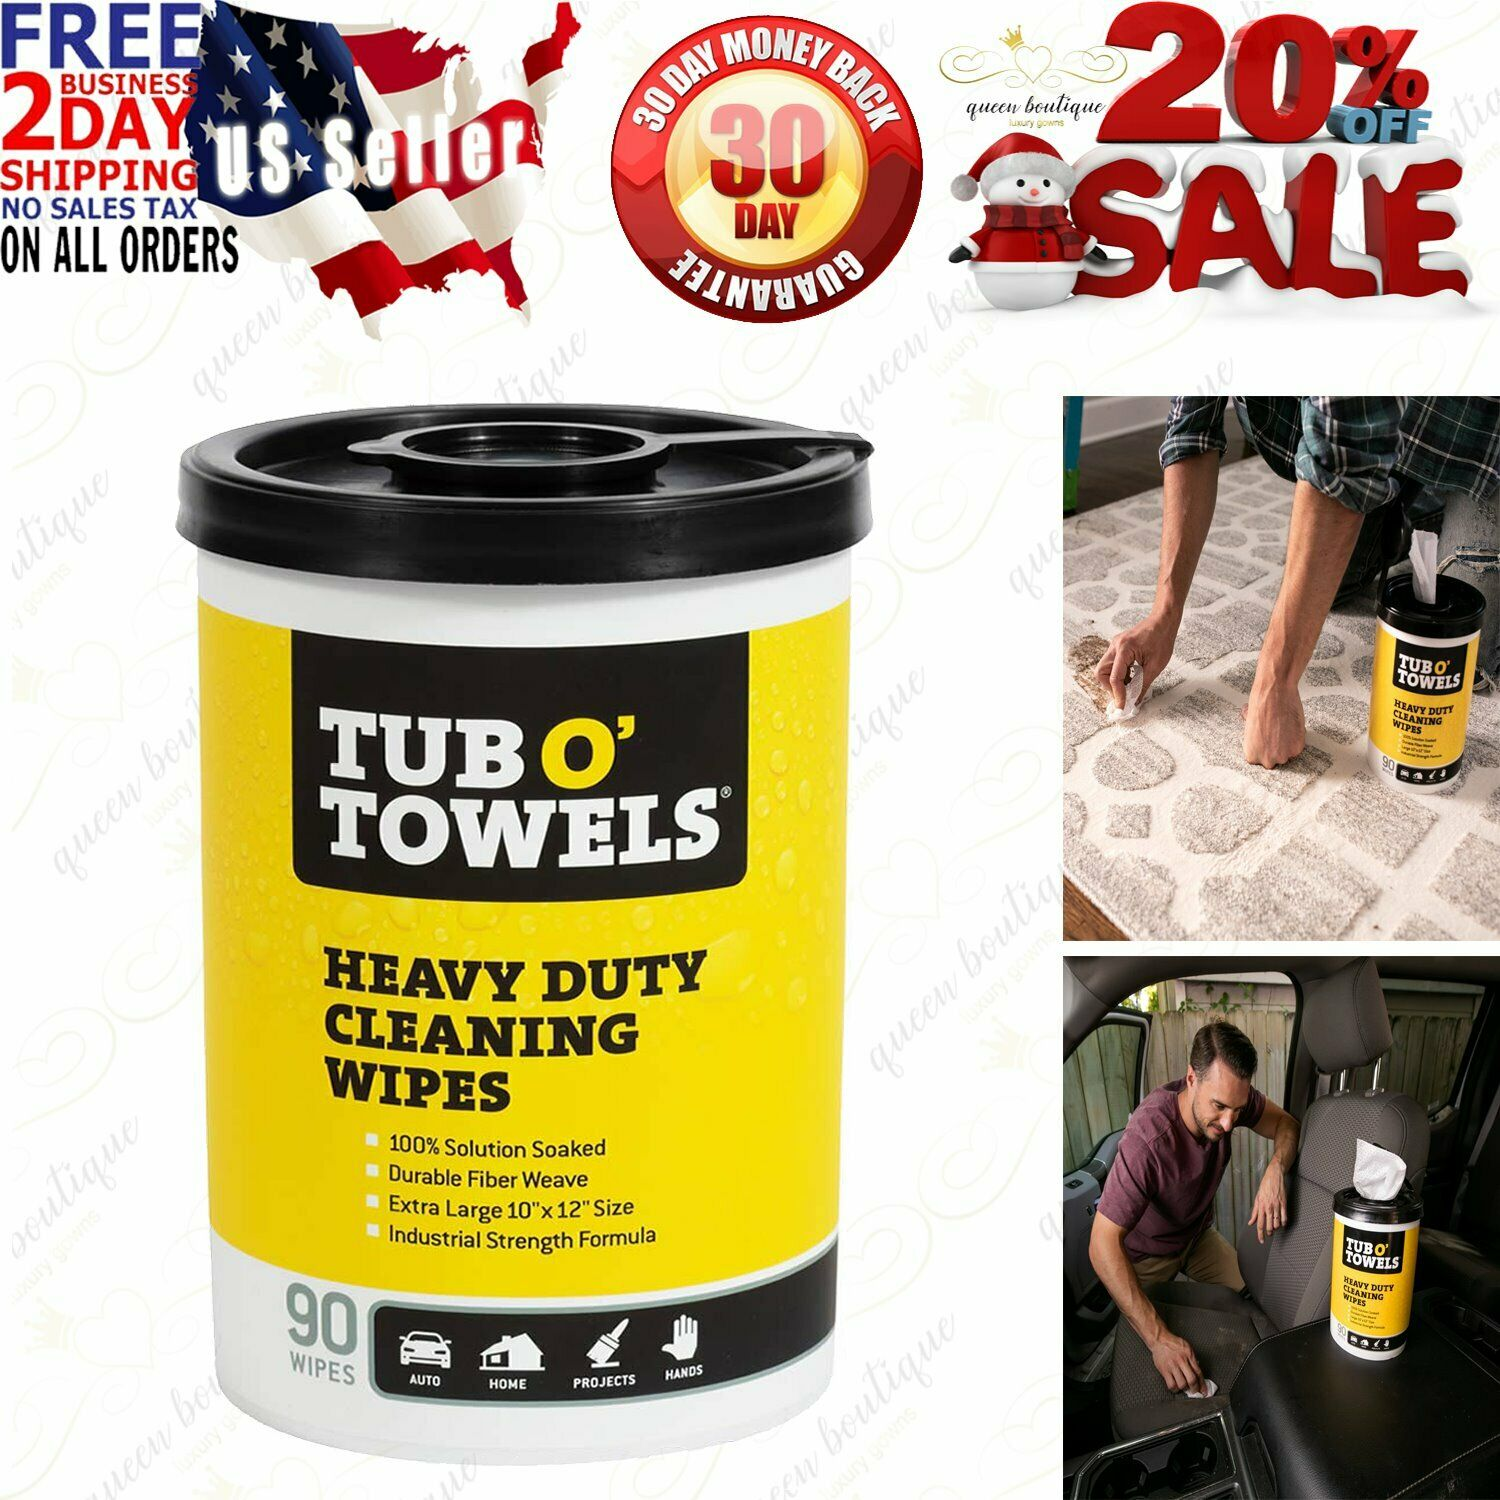 Heavy Duty Durable Floor Cleaning Cloths Ideal for Heavy Duty Cleaning